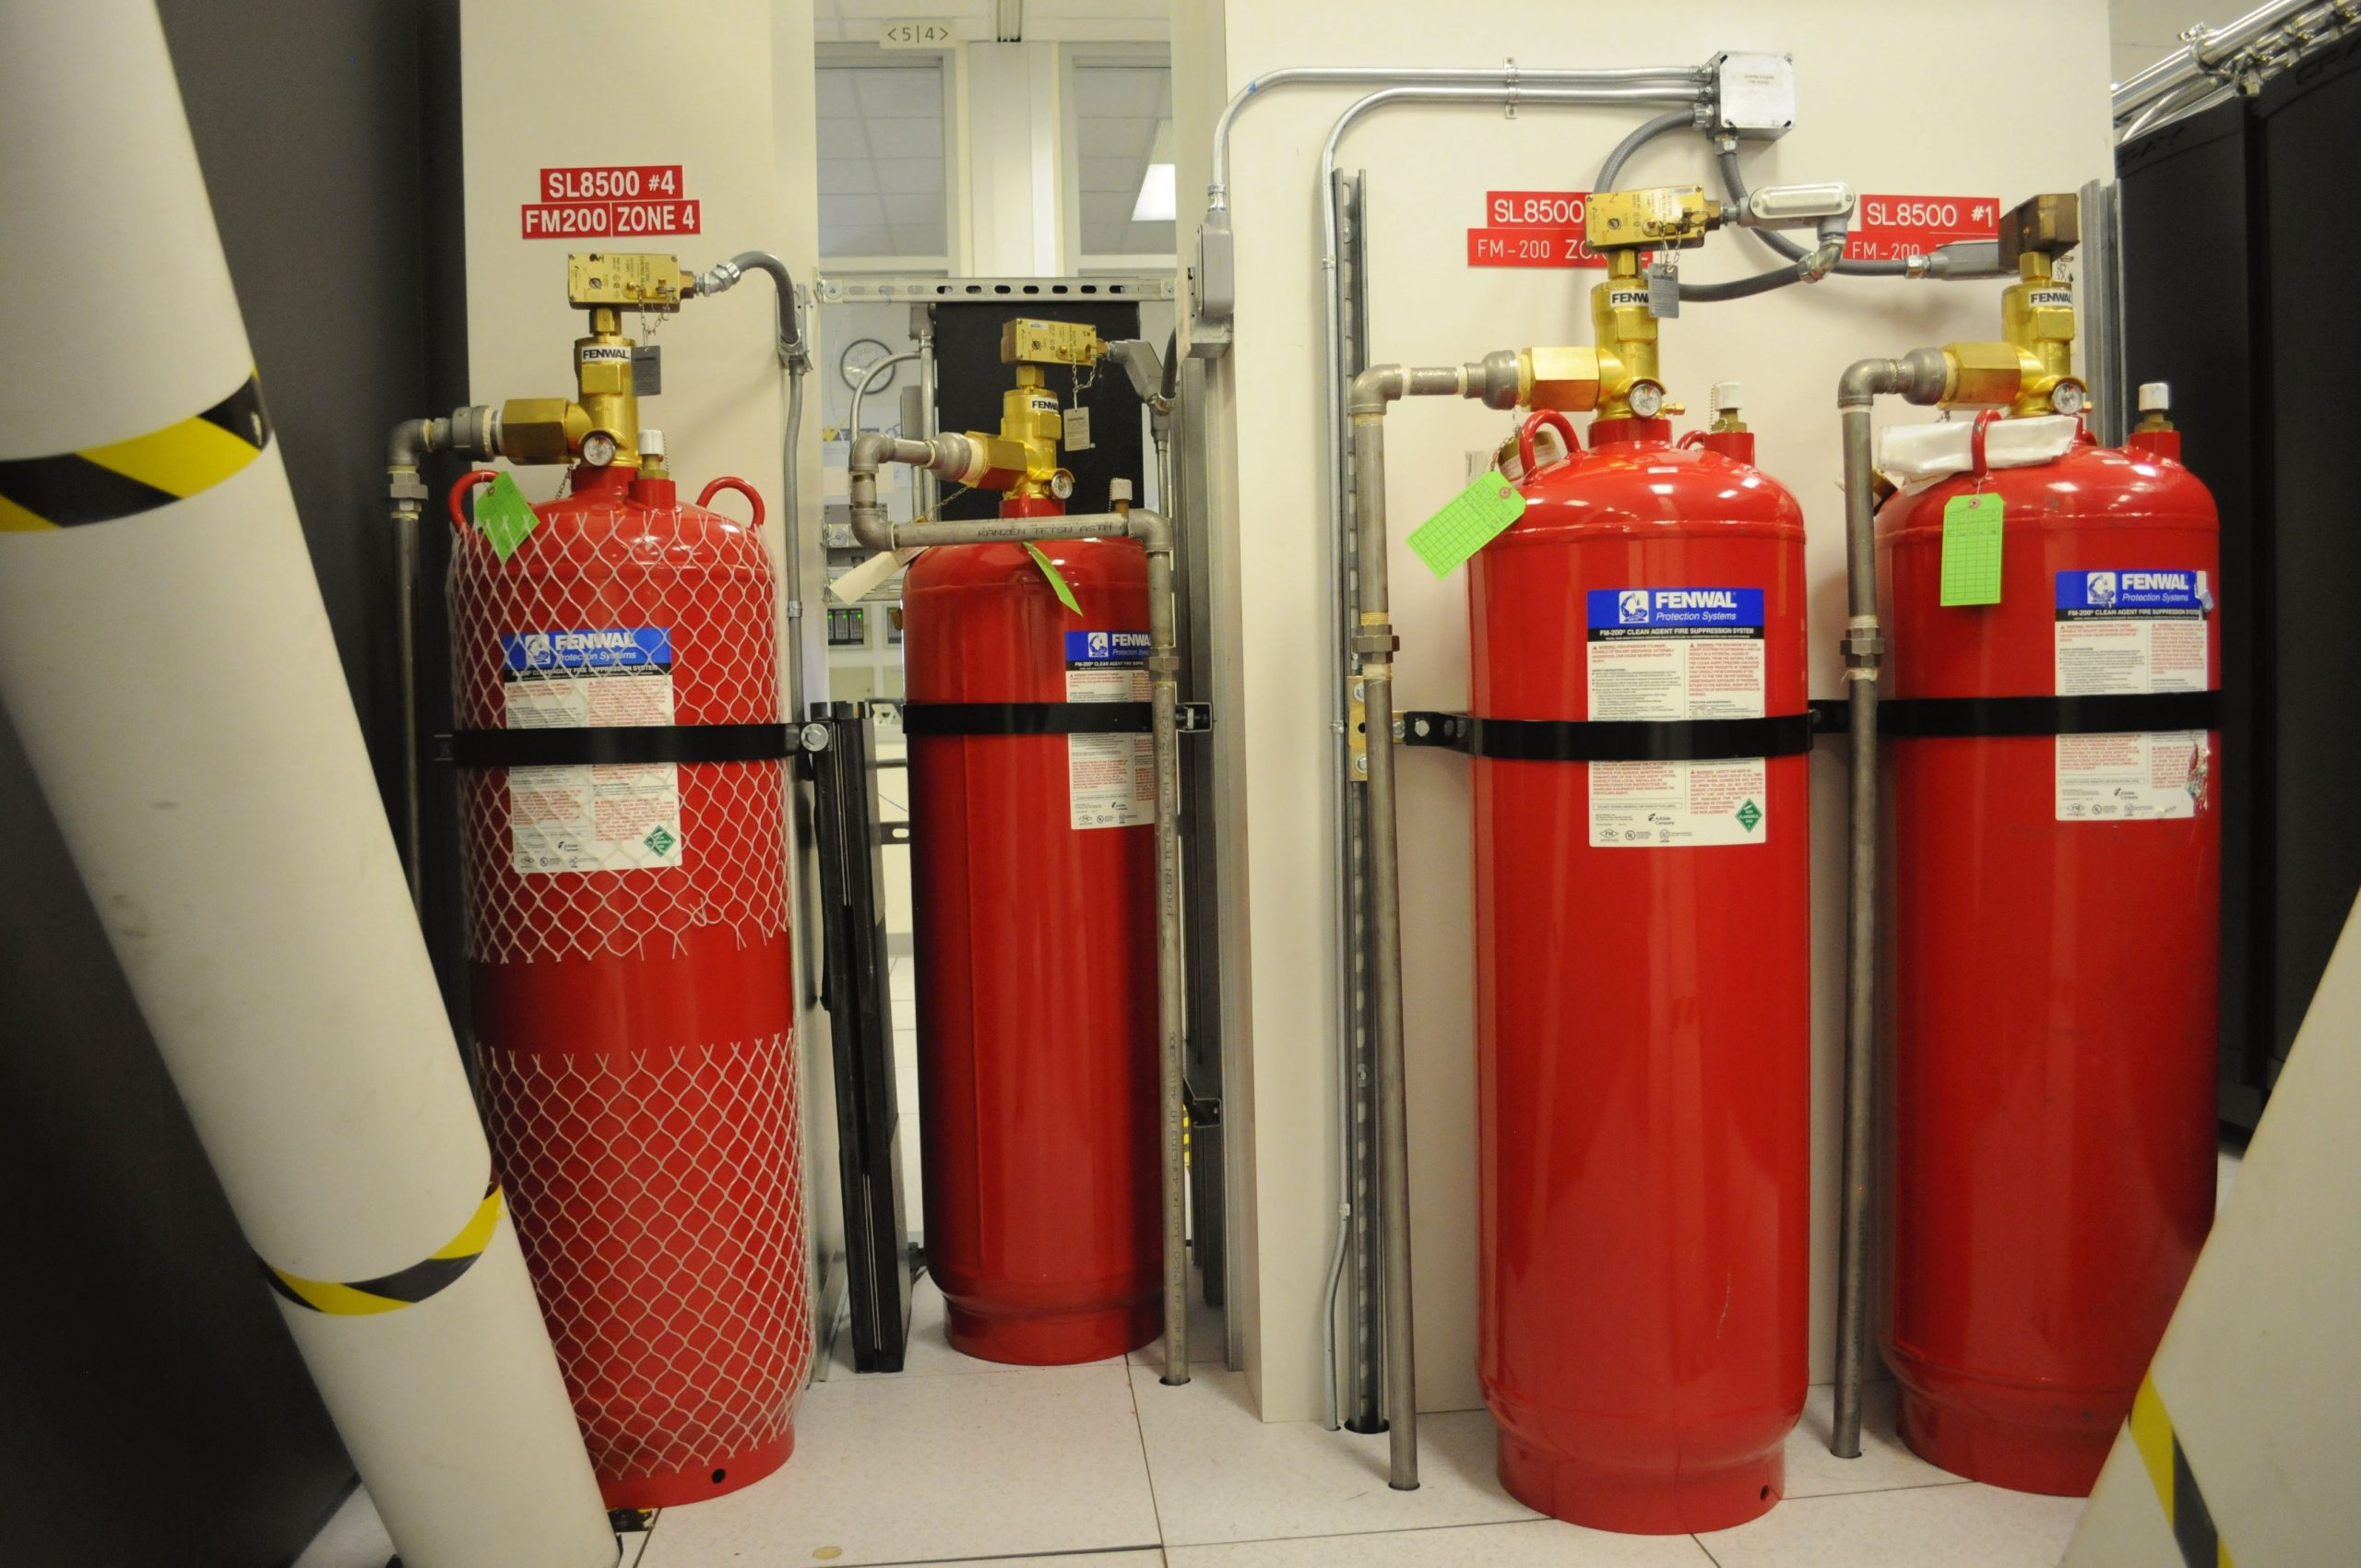 FM 200 Fire Suppression System and its benefits